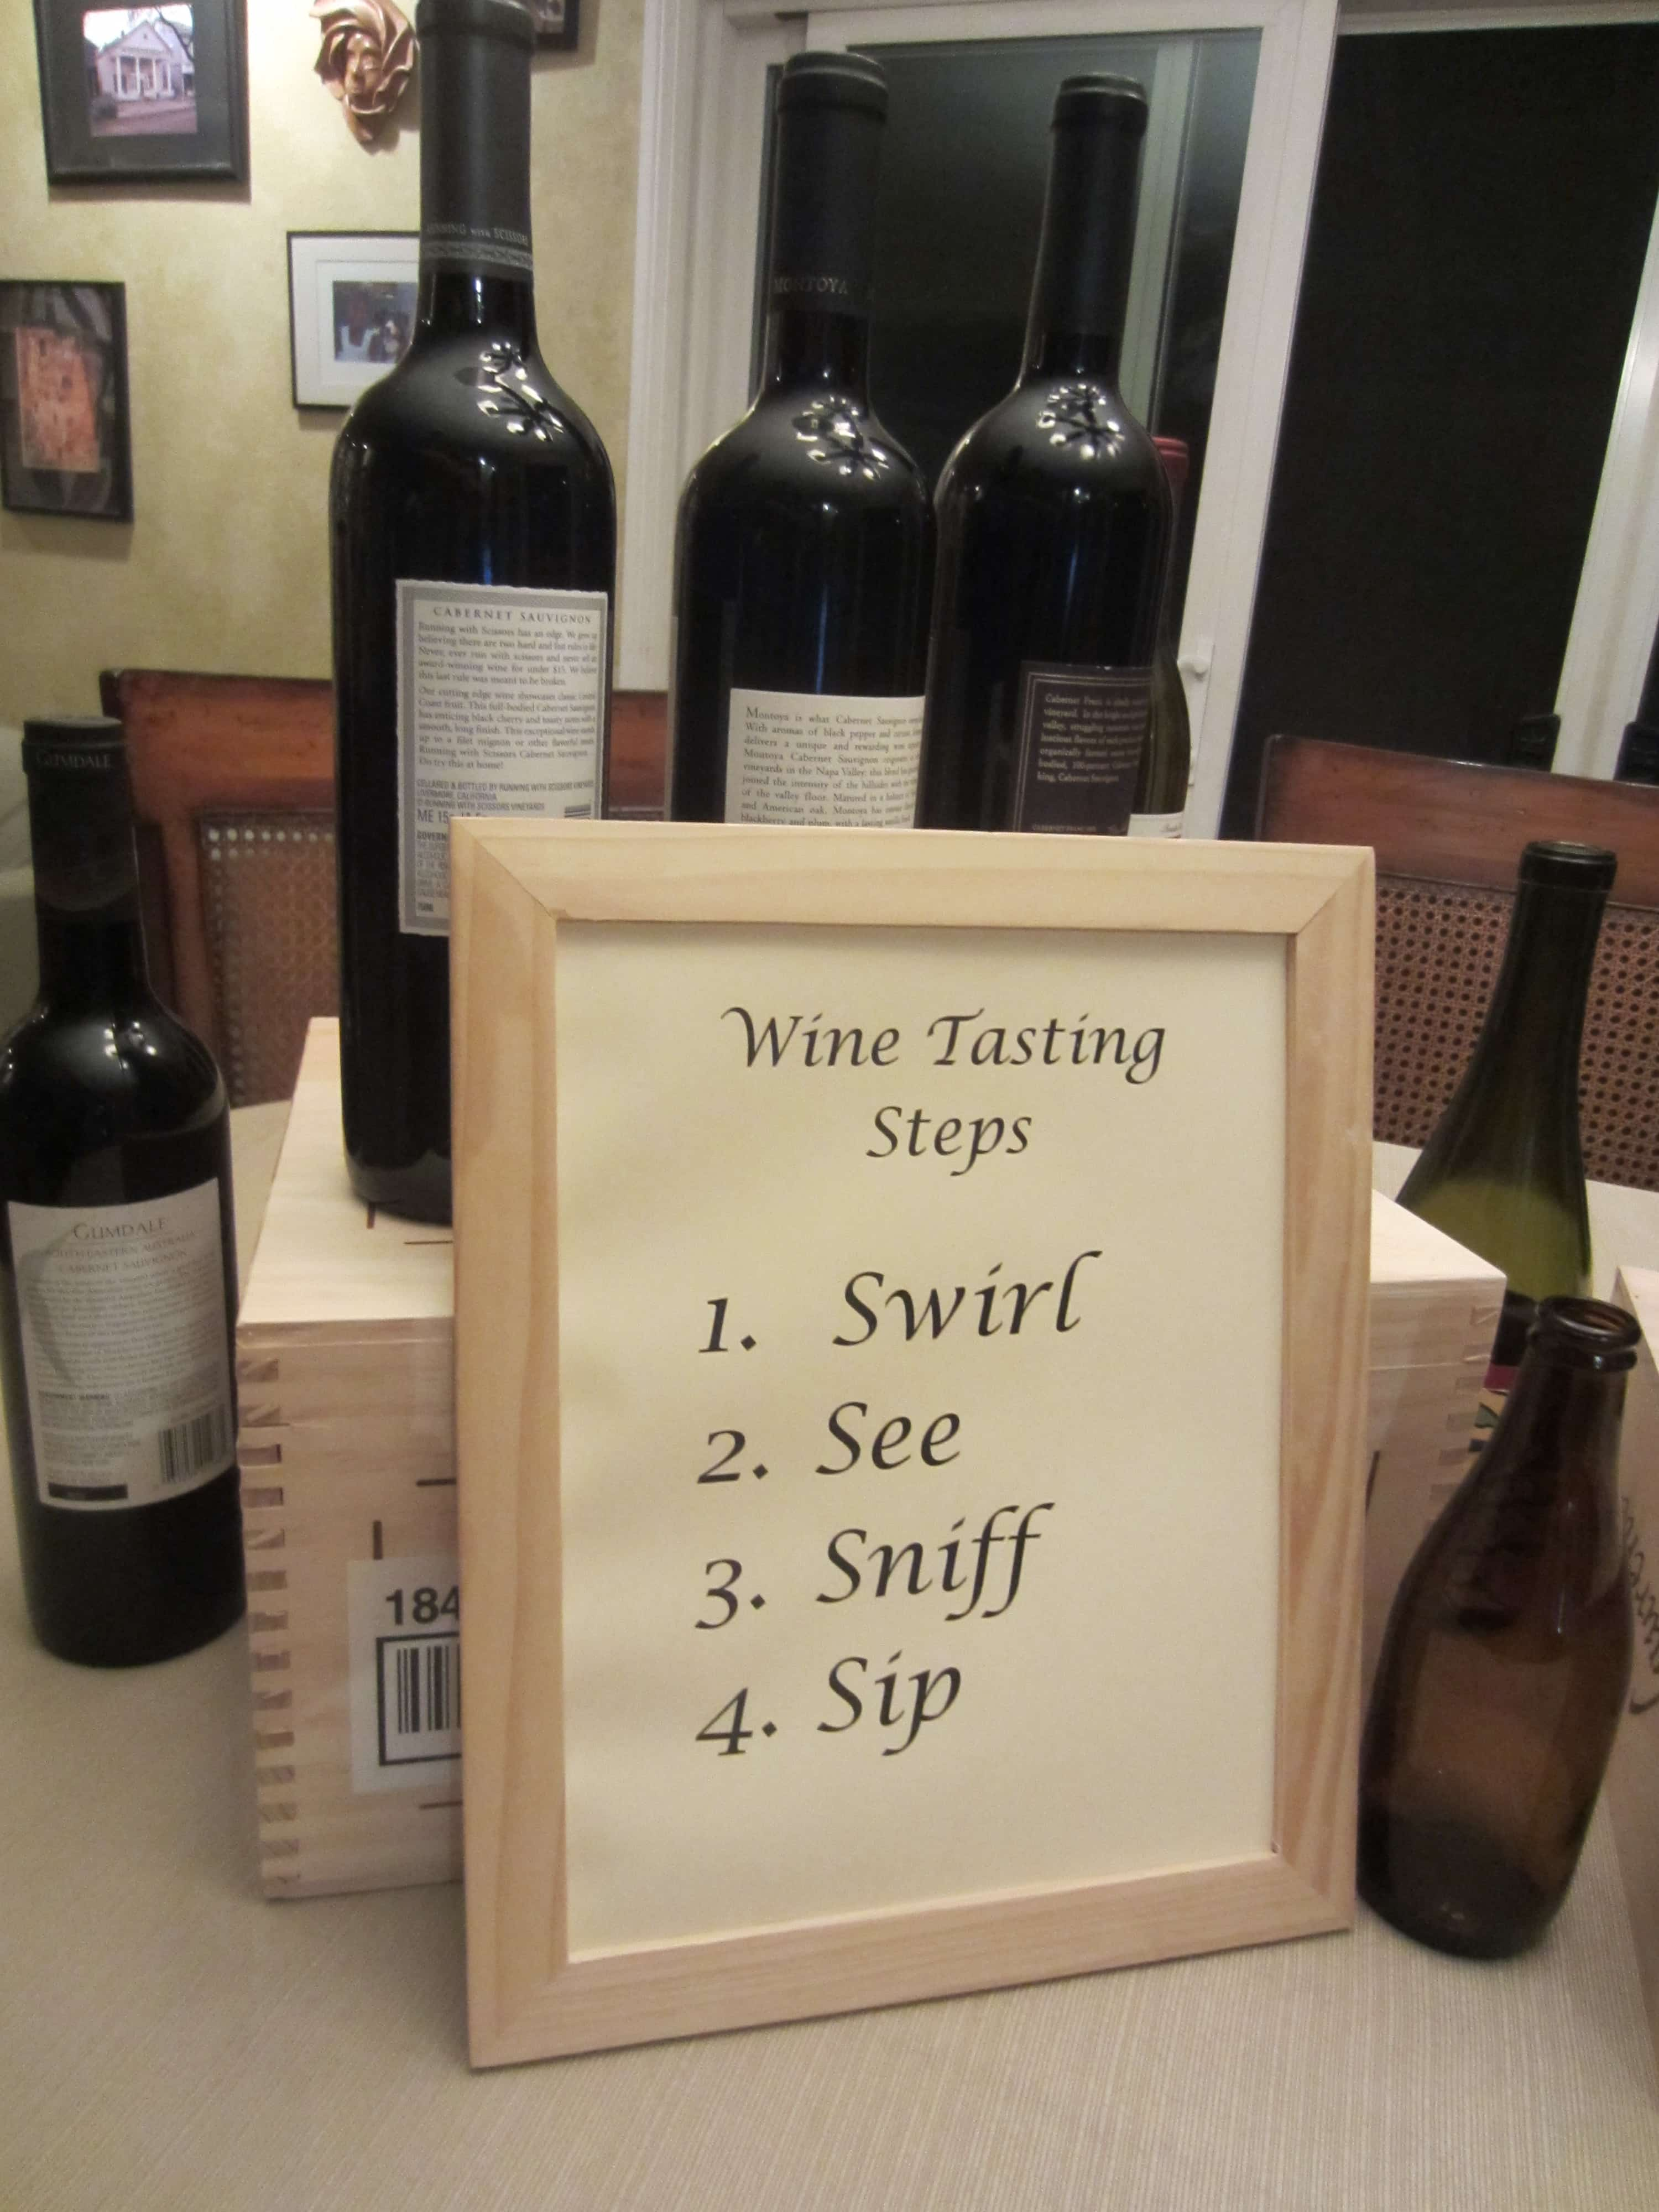 They Were Able To Assist Me And Curtailed It To My Budget I Displayed The Featured Wines As Part Of A Centerpiece As Well As The Wine Tasting Steps